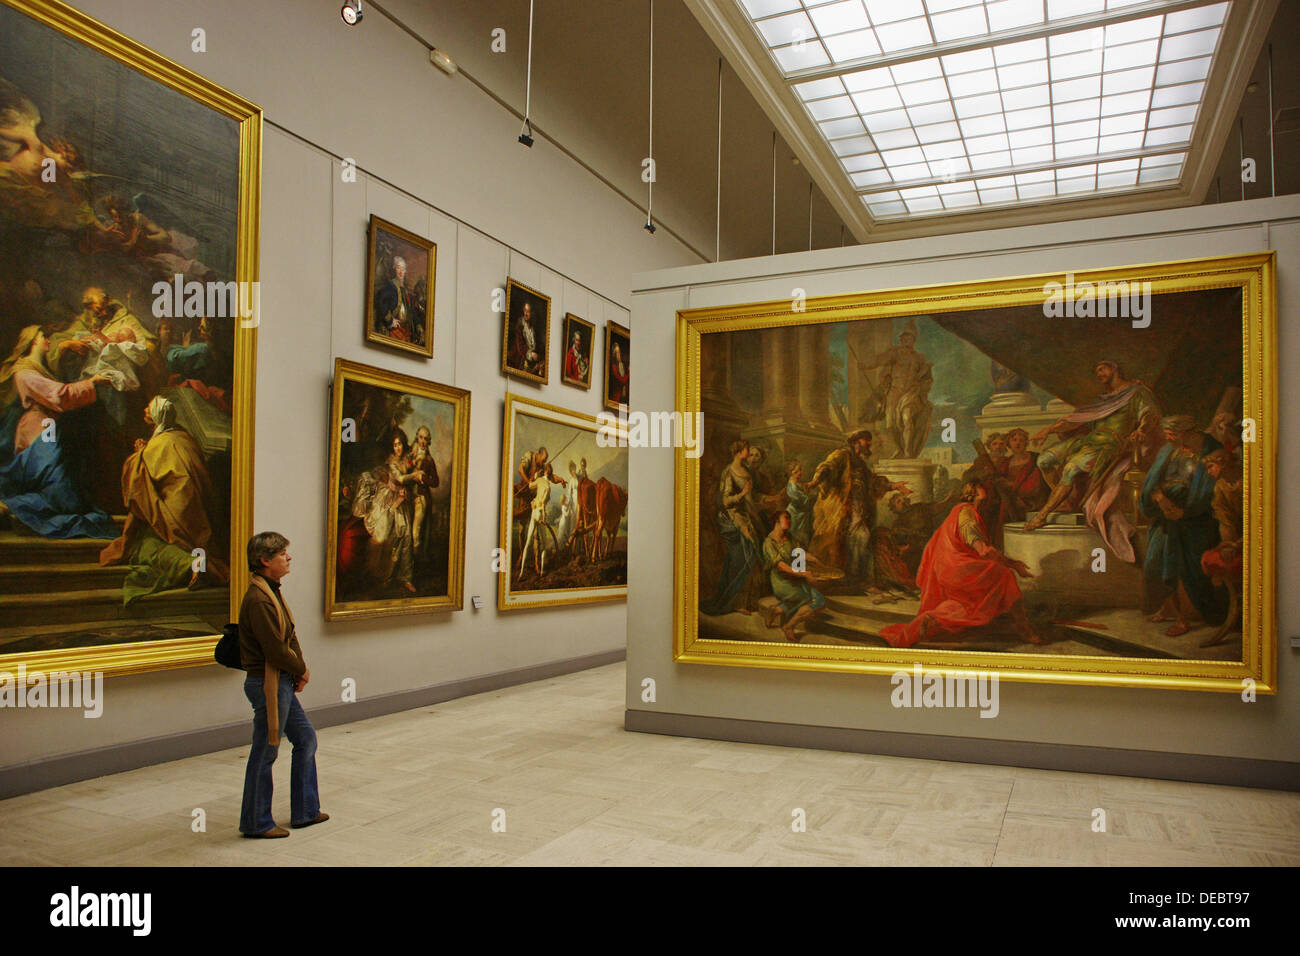 Permanent collection at the Musée des Beaux Arts (Fine Arts Museum), Bordeaux. Gironde, Aquitaine, France - Stock Image